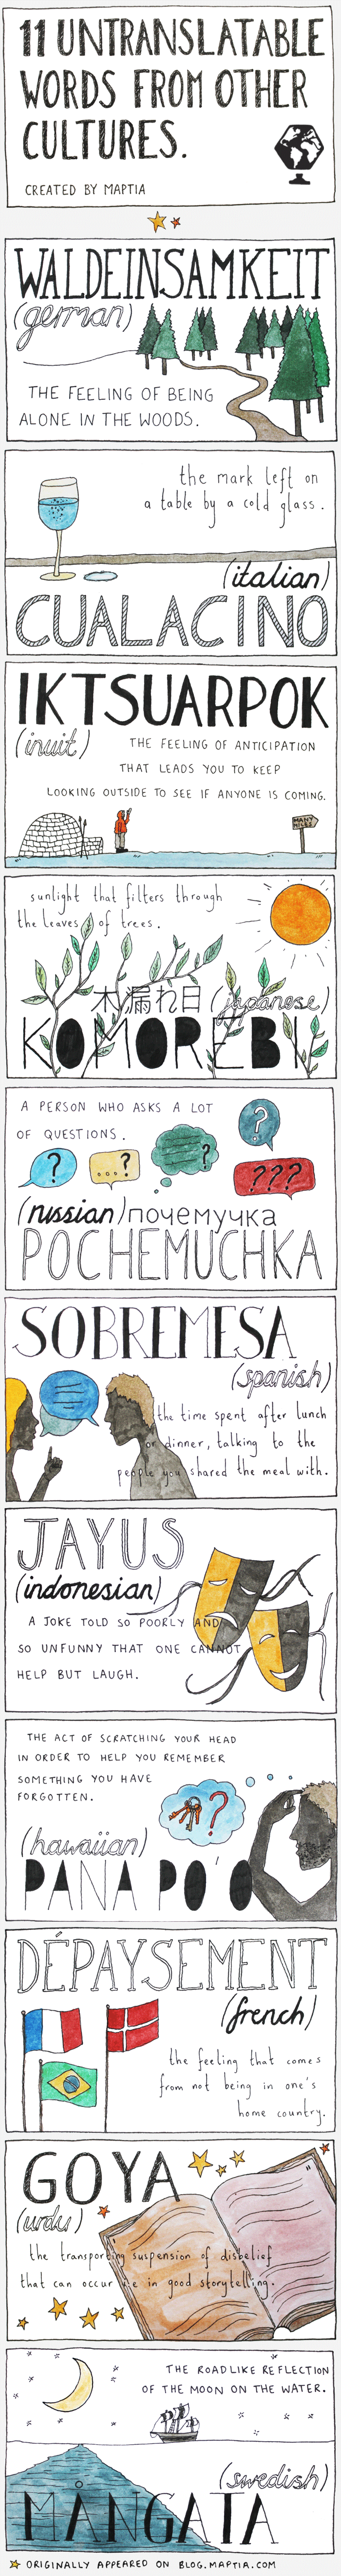 Untranslatable words from different cultures